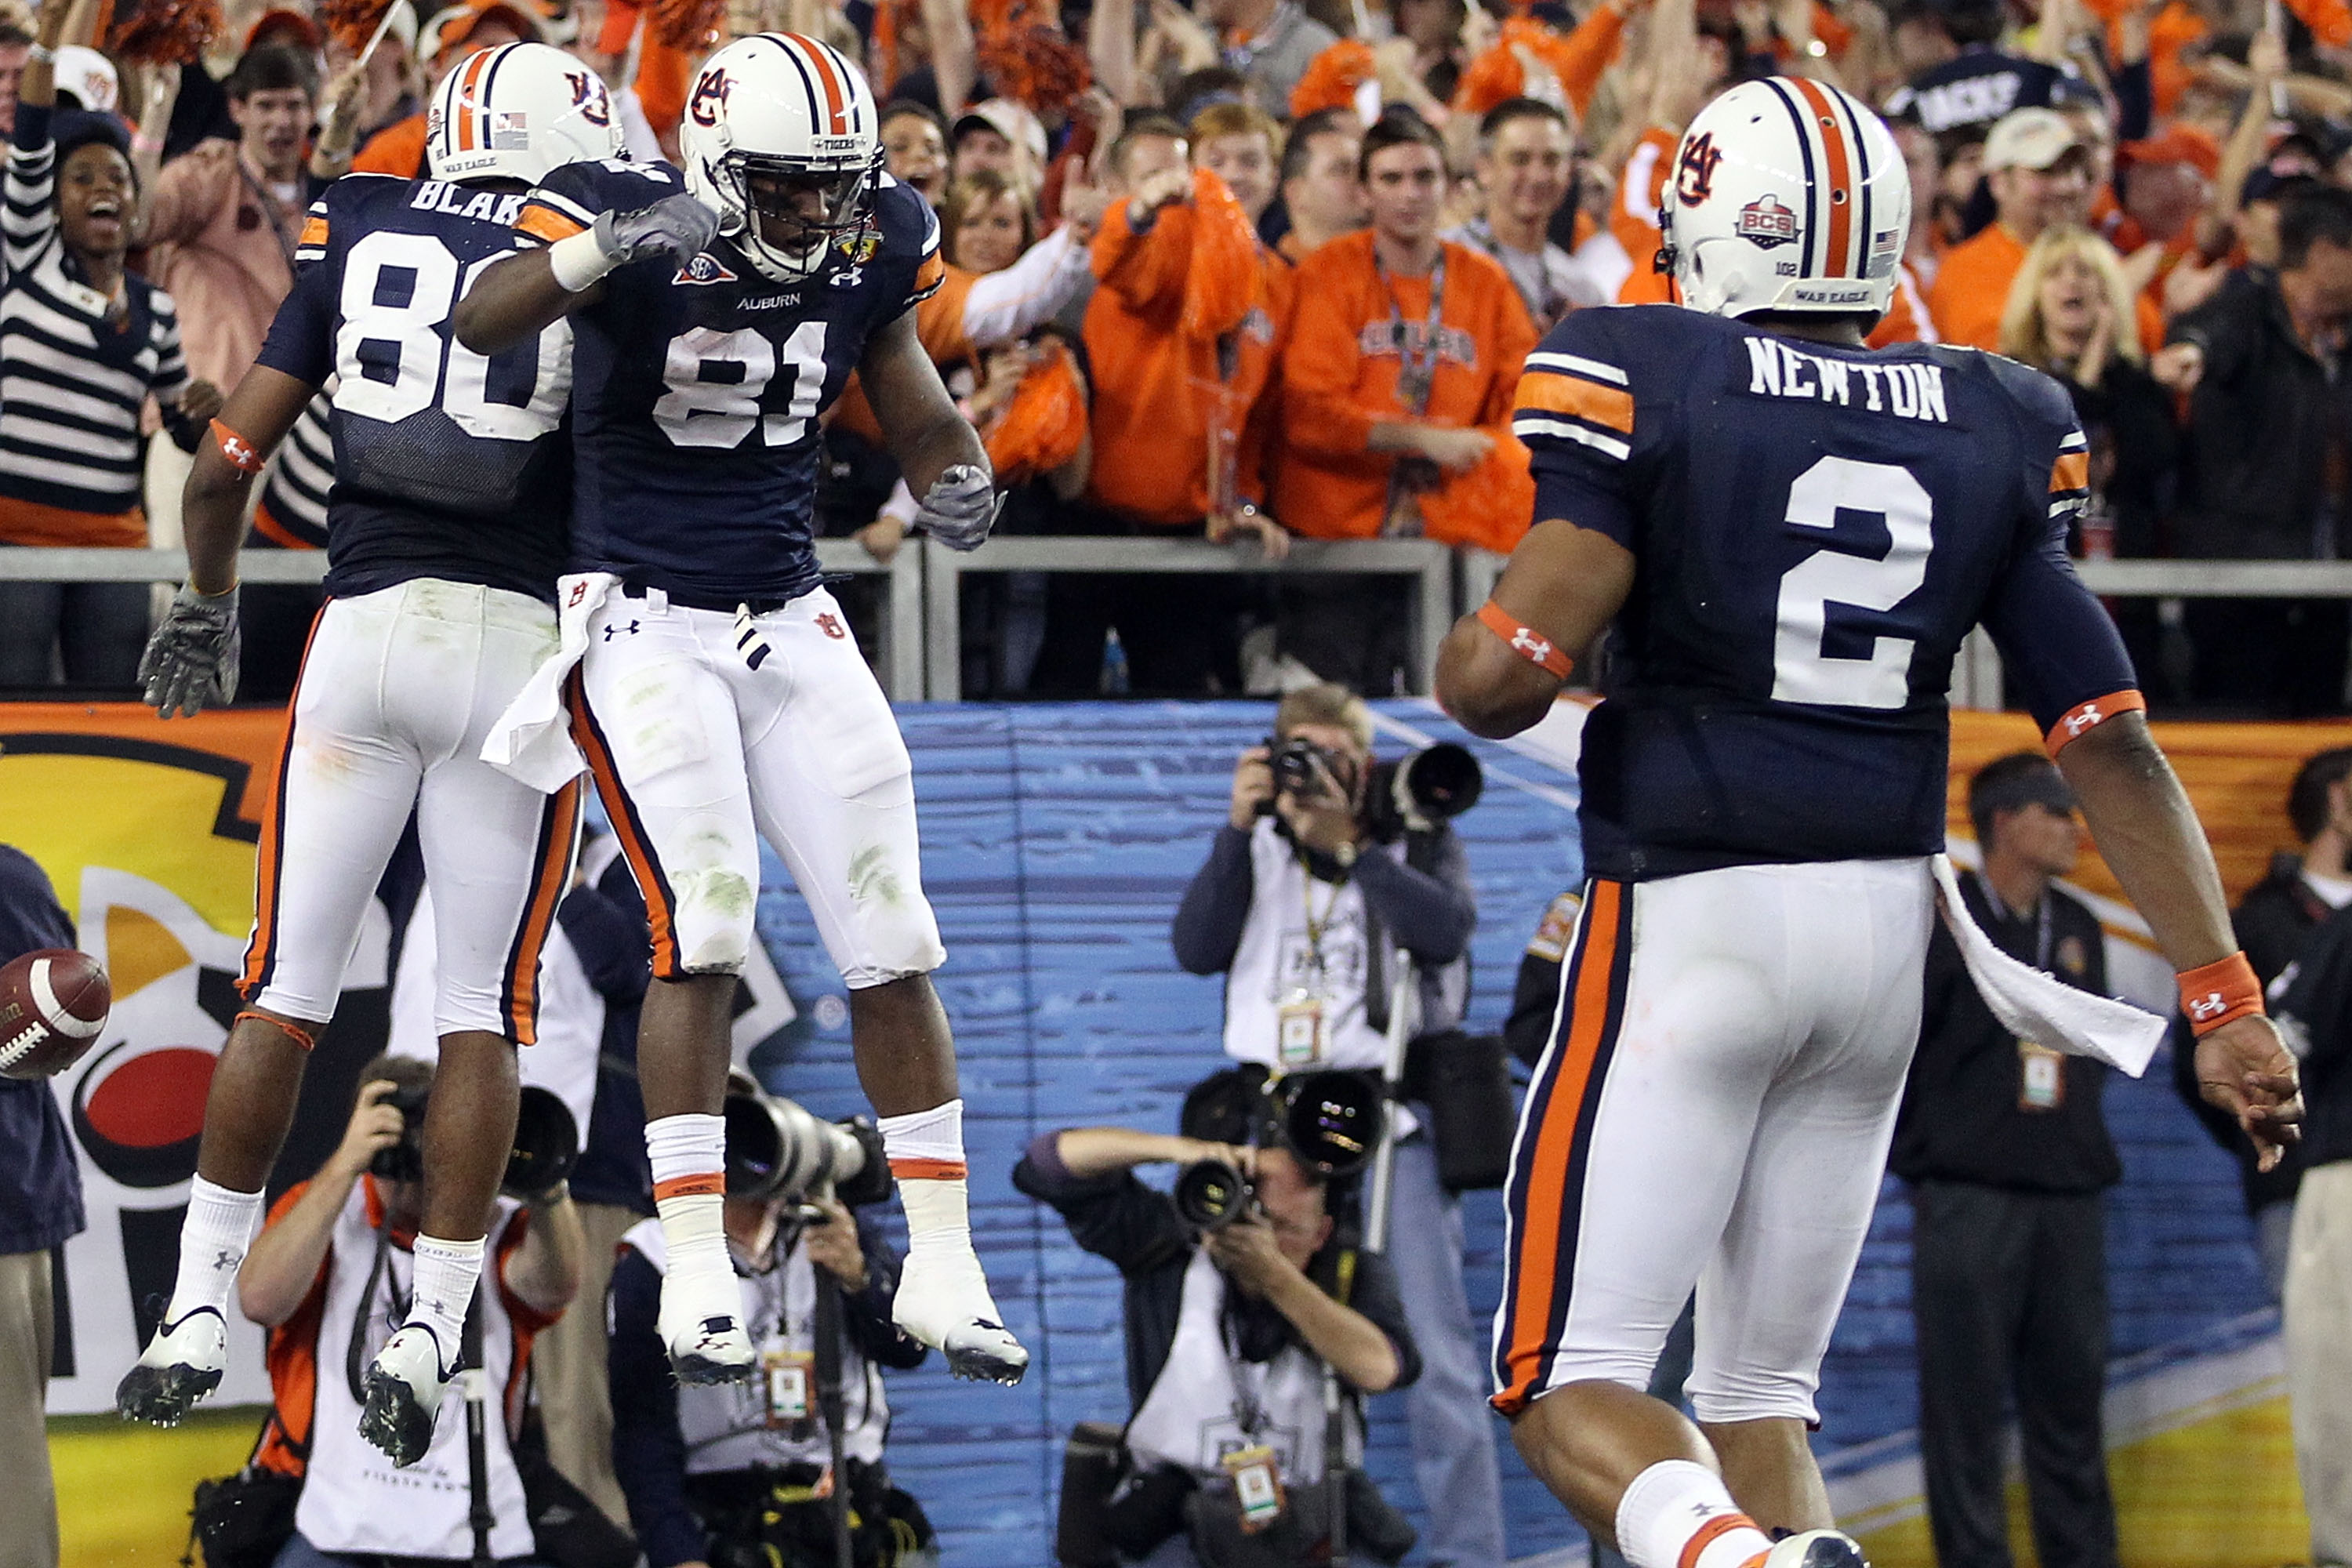 GLENDALE, AZ - JANUARY 10:  Emory Blake #80 and Terrell Zachery #81 of the Auburn Tigers celebrate Blake's second quarter touchdown as quarterback Cam Newton #2 joins them against the Oregon Ducks during the Tostitos BCS National Championship Game at Univ